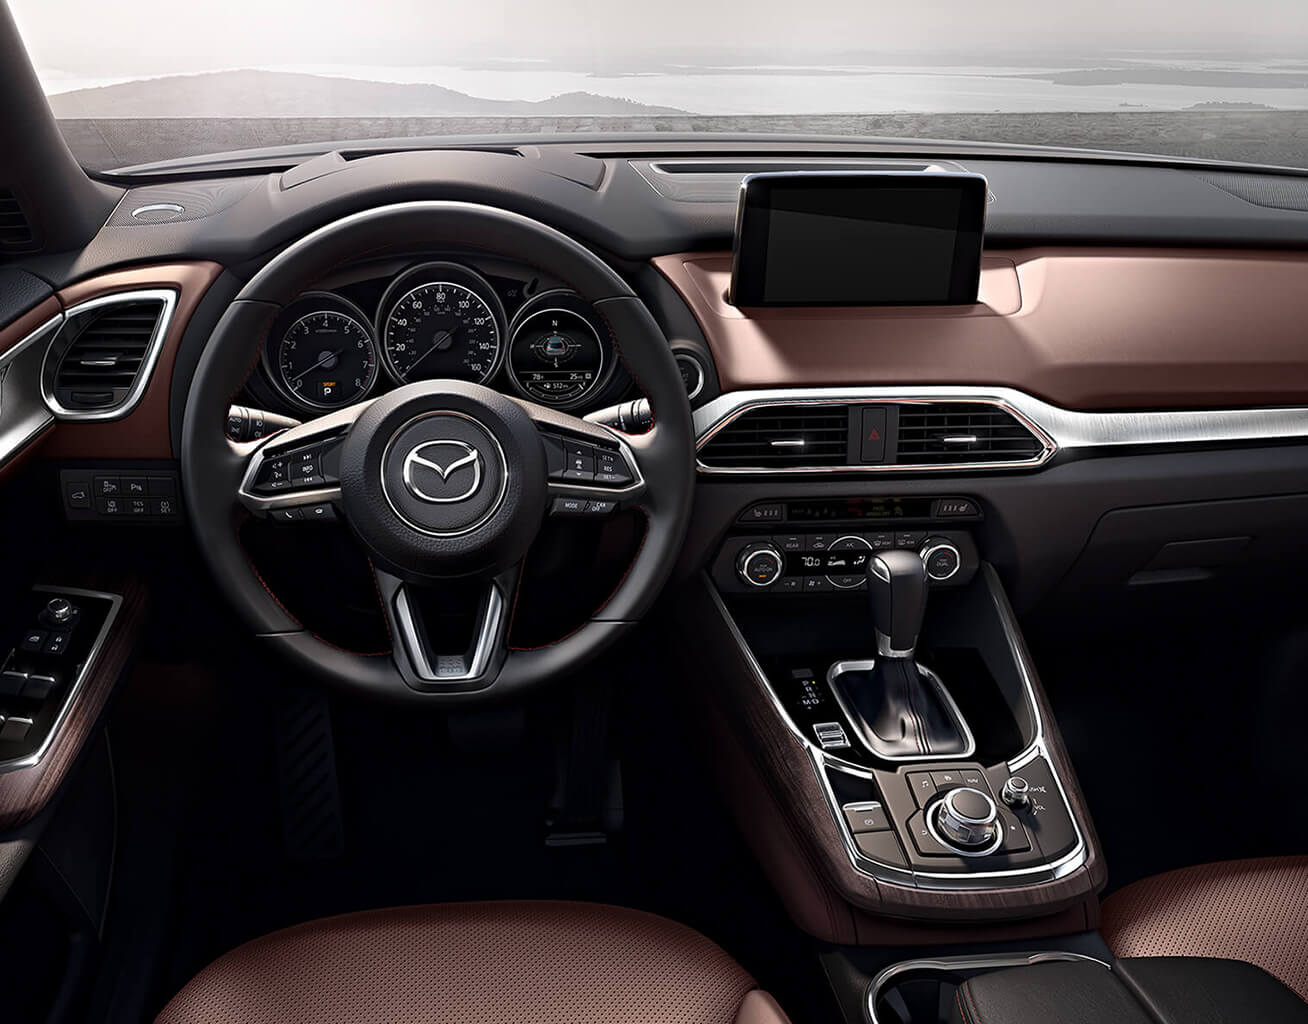 2016-cx9-signature-interior-steering-wheel-mde-cx9-overview-overlay